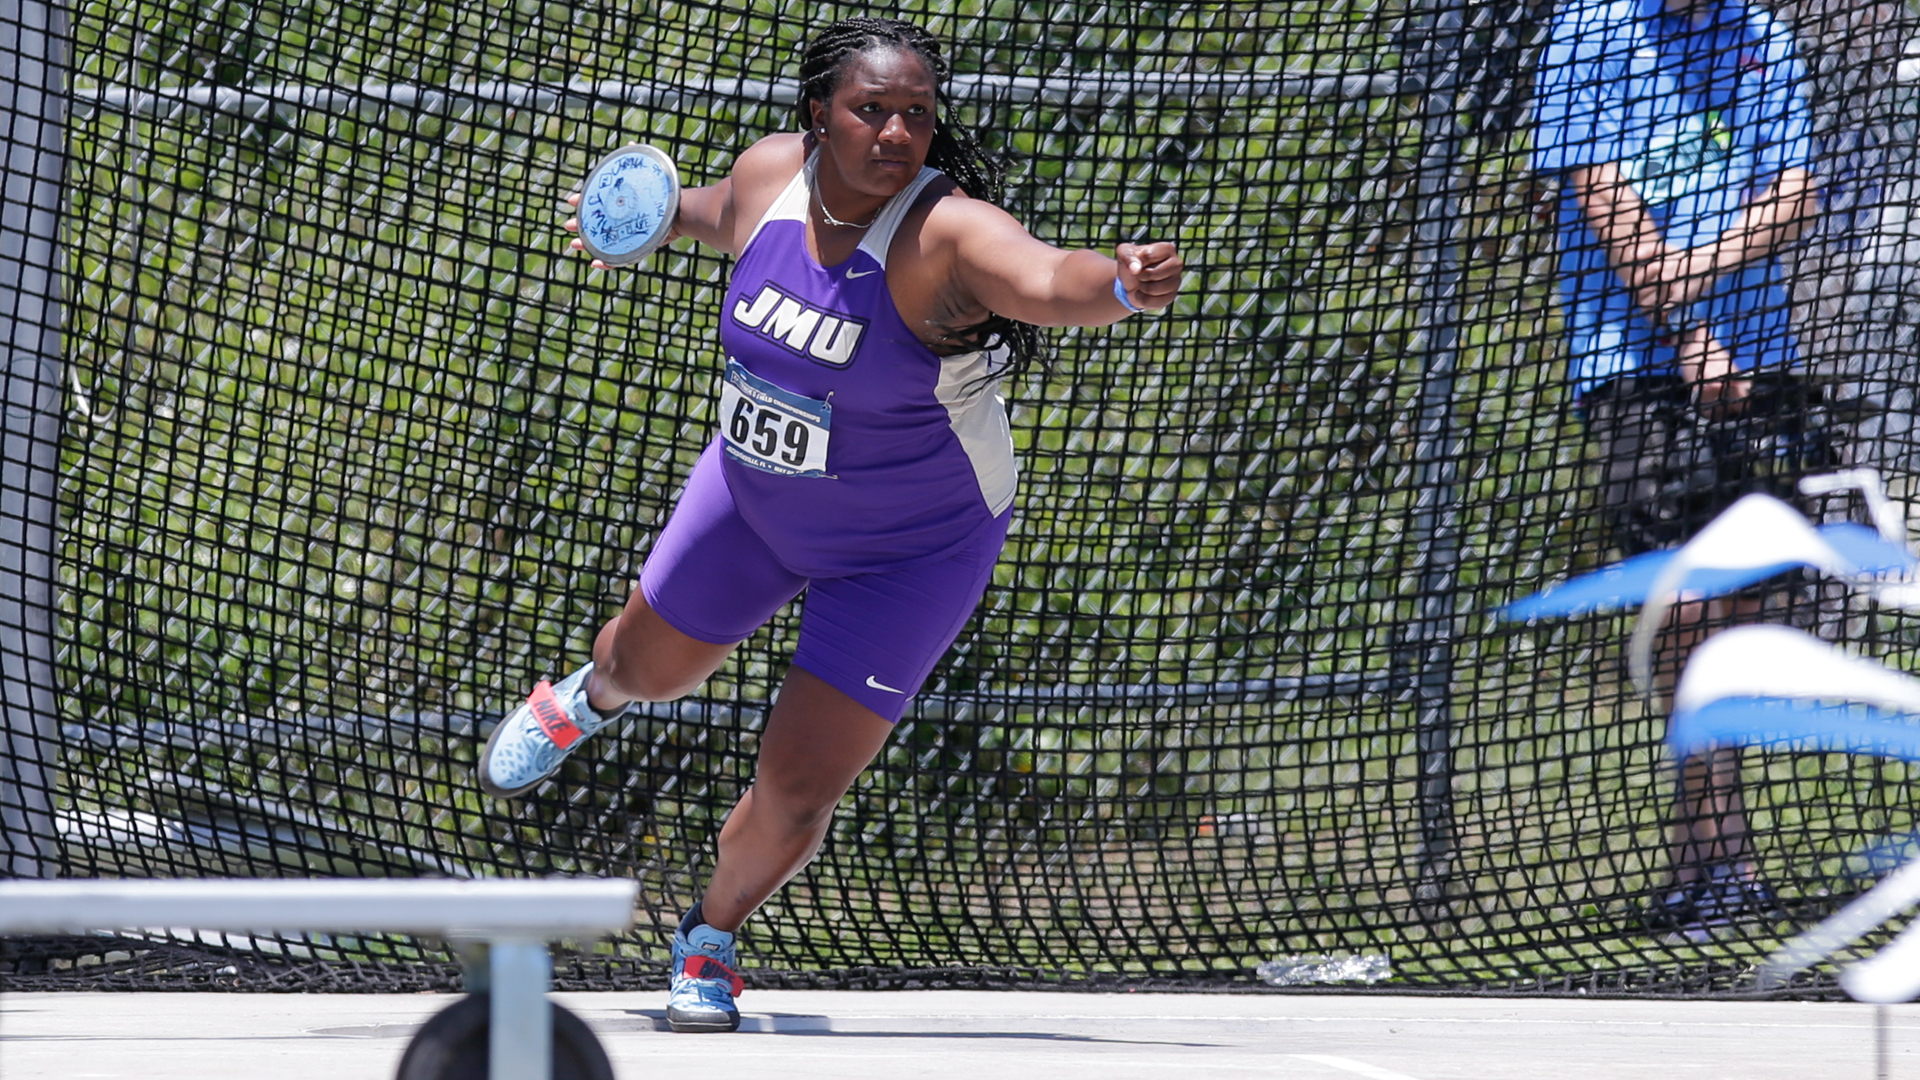 Track & Field: Johnson & Viparina Take On The NCAA East Prelims